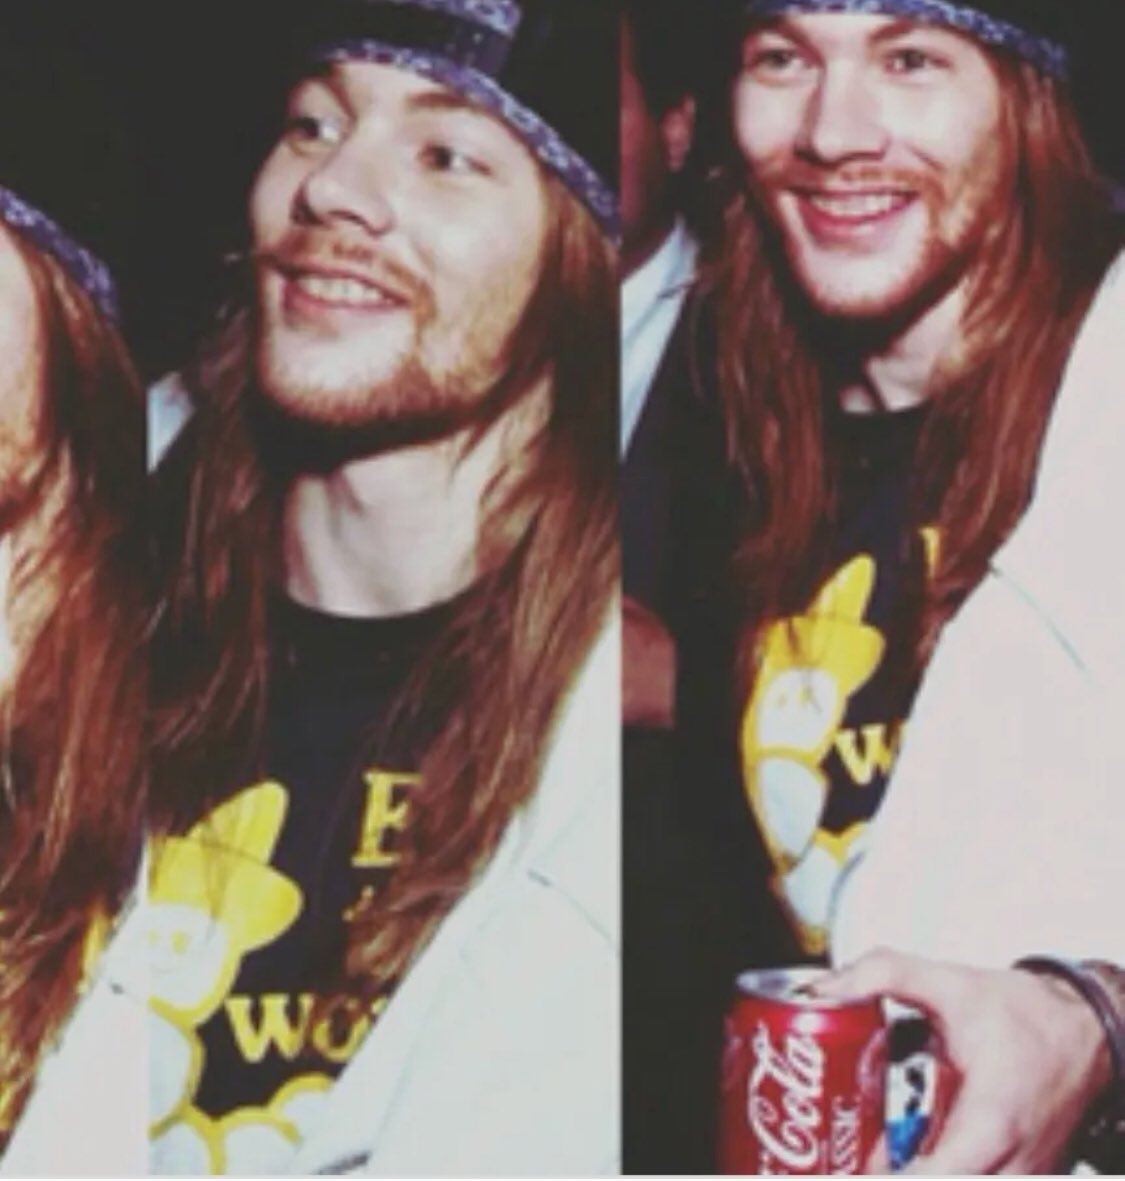 Communication on this topic: Seren gibson by frank white august 2012 uhq photo shoot, axl-rose-goes-crazy-with-his-teeth/